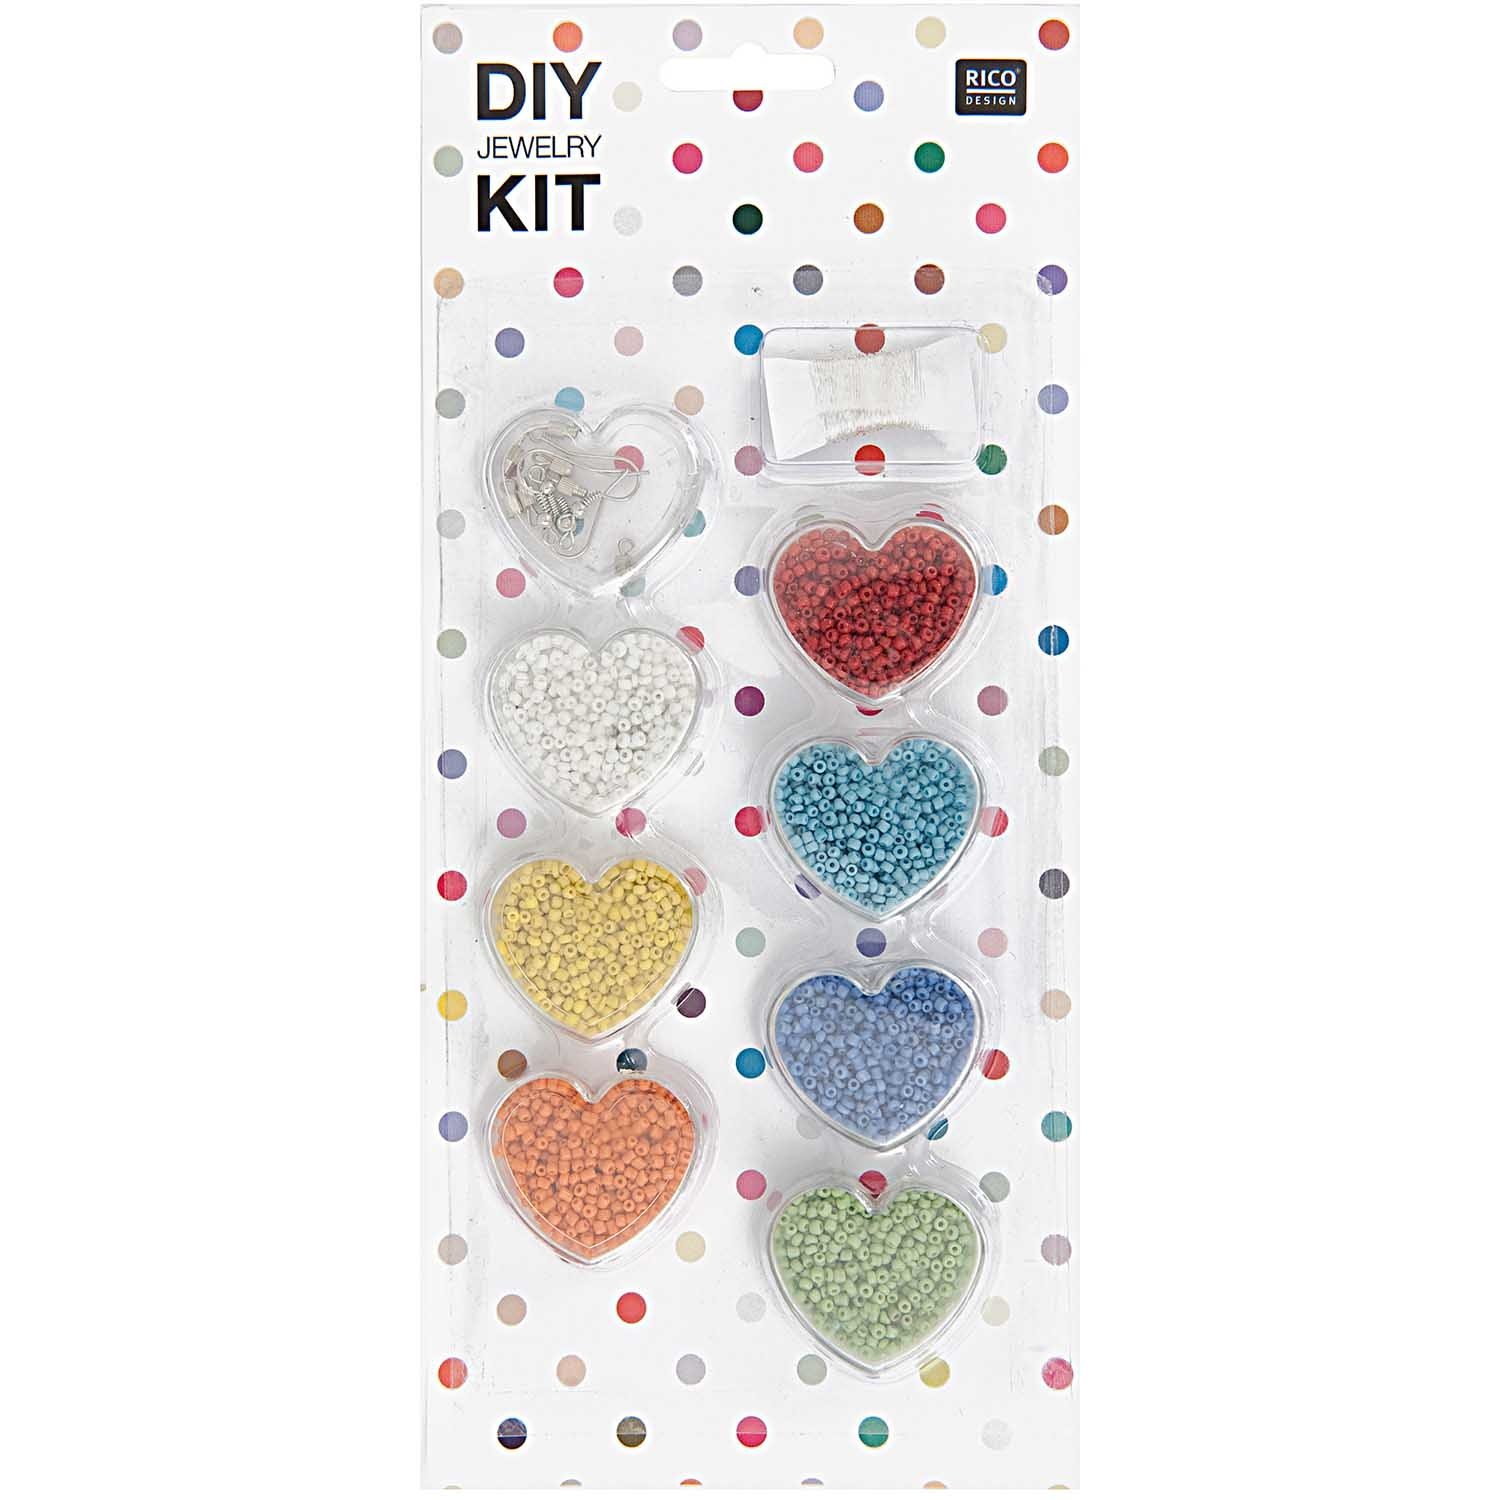 Rico NAY DIY JEWELRY KIT MULTICOLOR OPAL 12/27/1,5CM